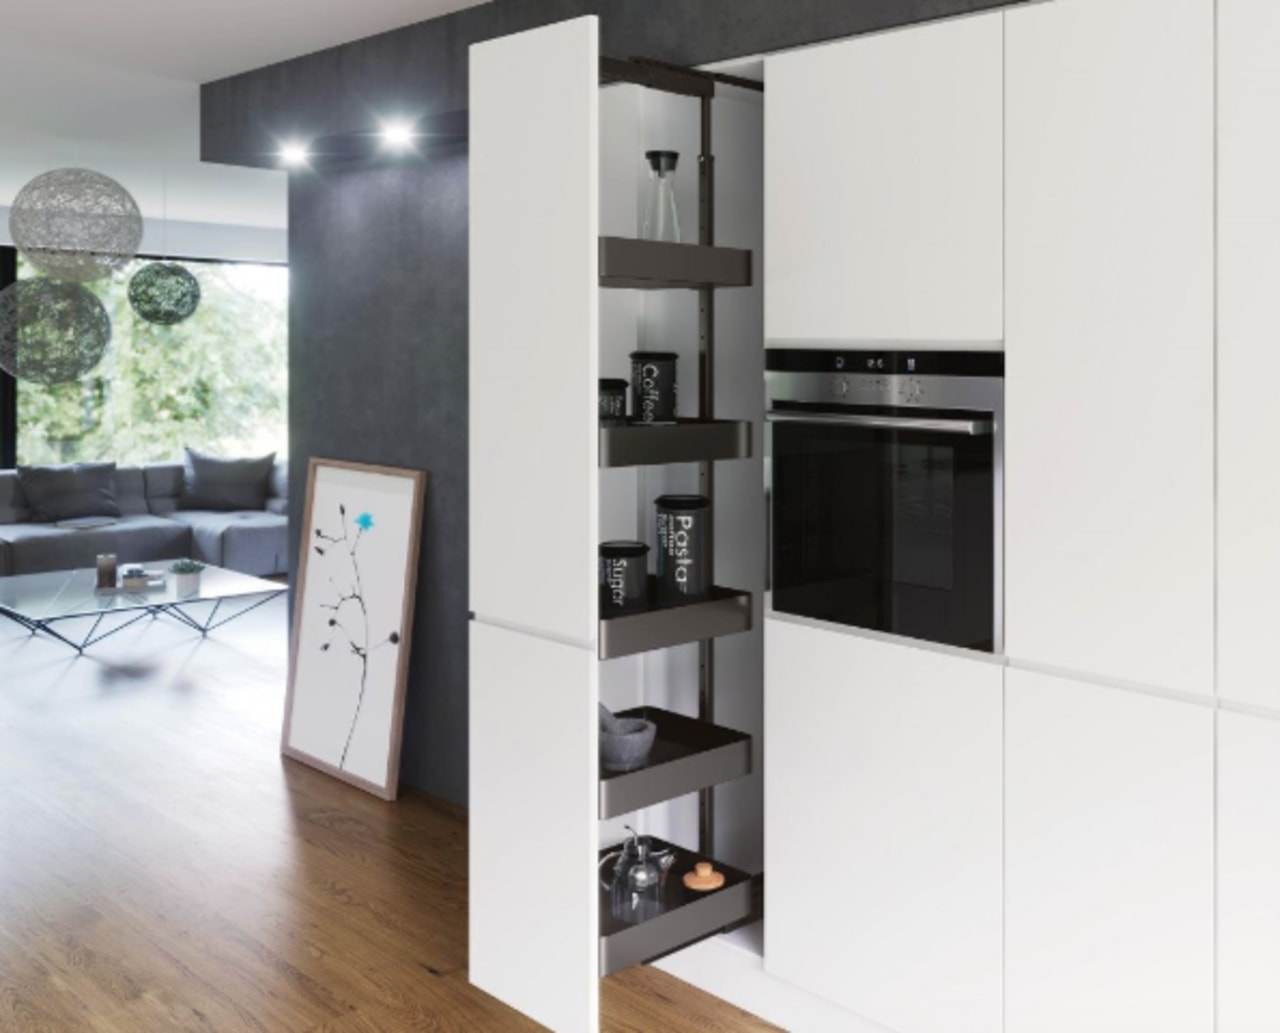 An example of the Planero Vs Tal Larder home appliance, interior design, kitchen, white